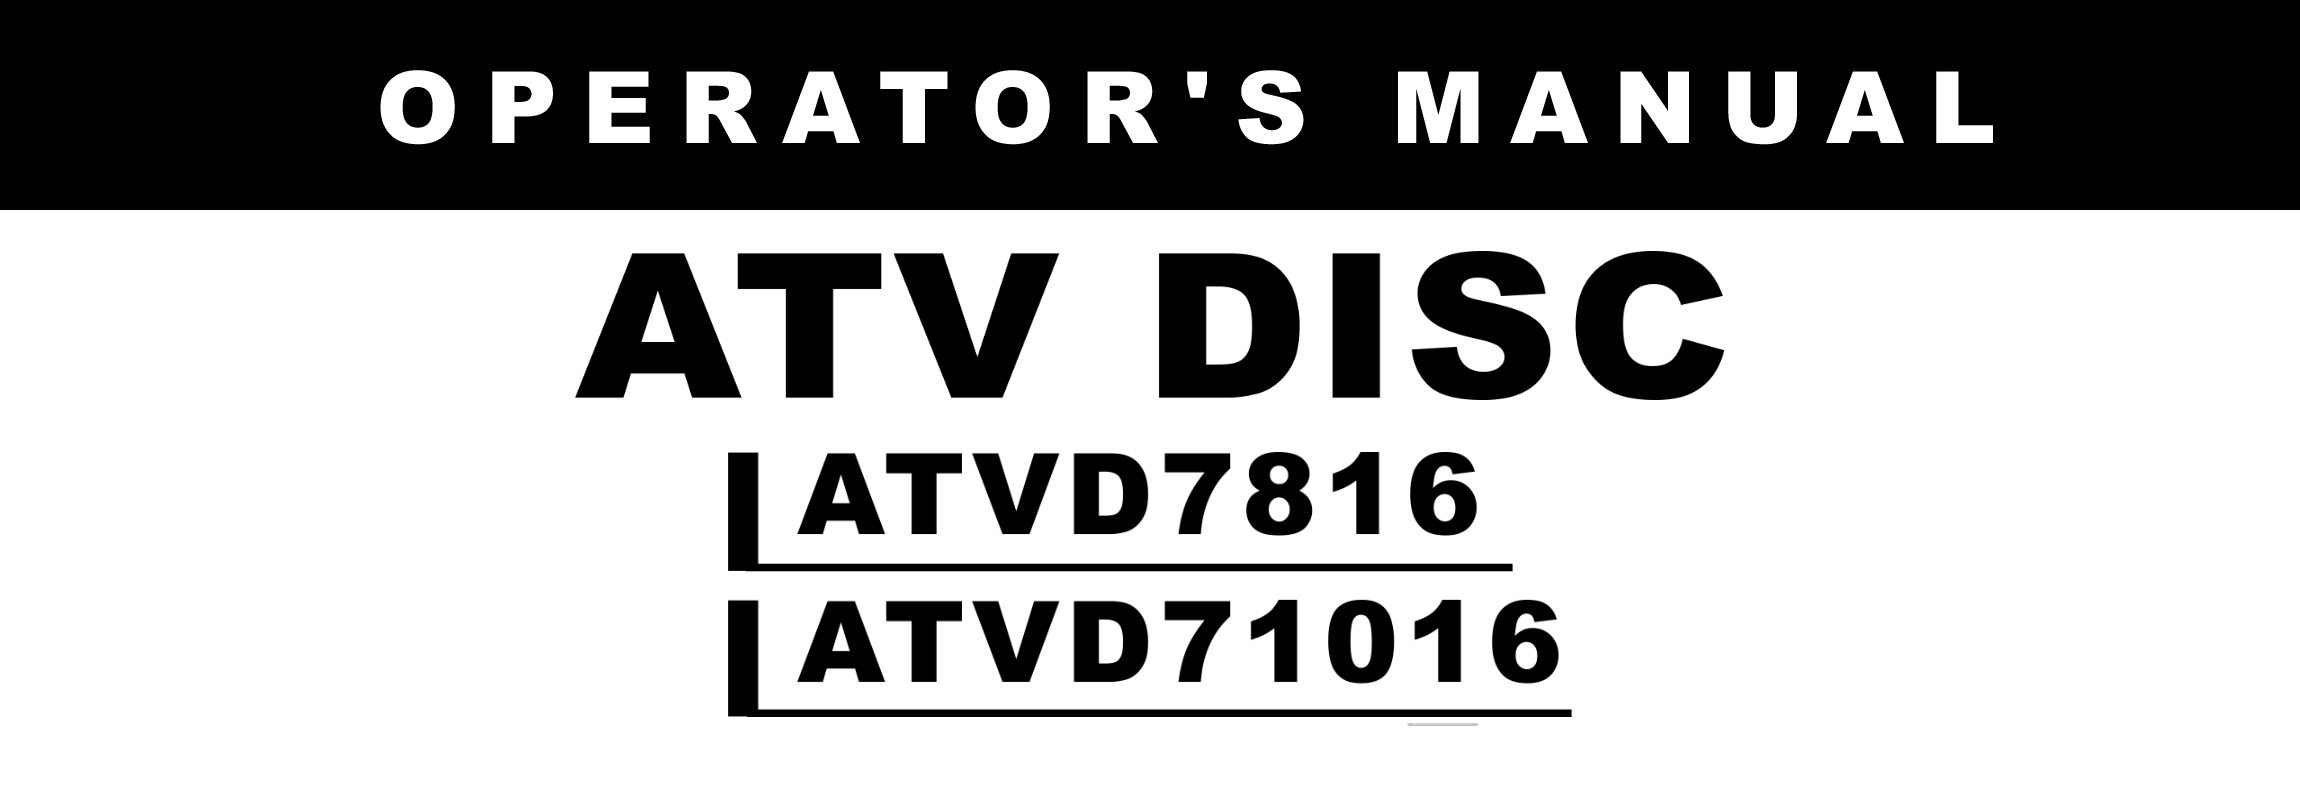 ATVD Series1 Owners Manual